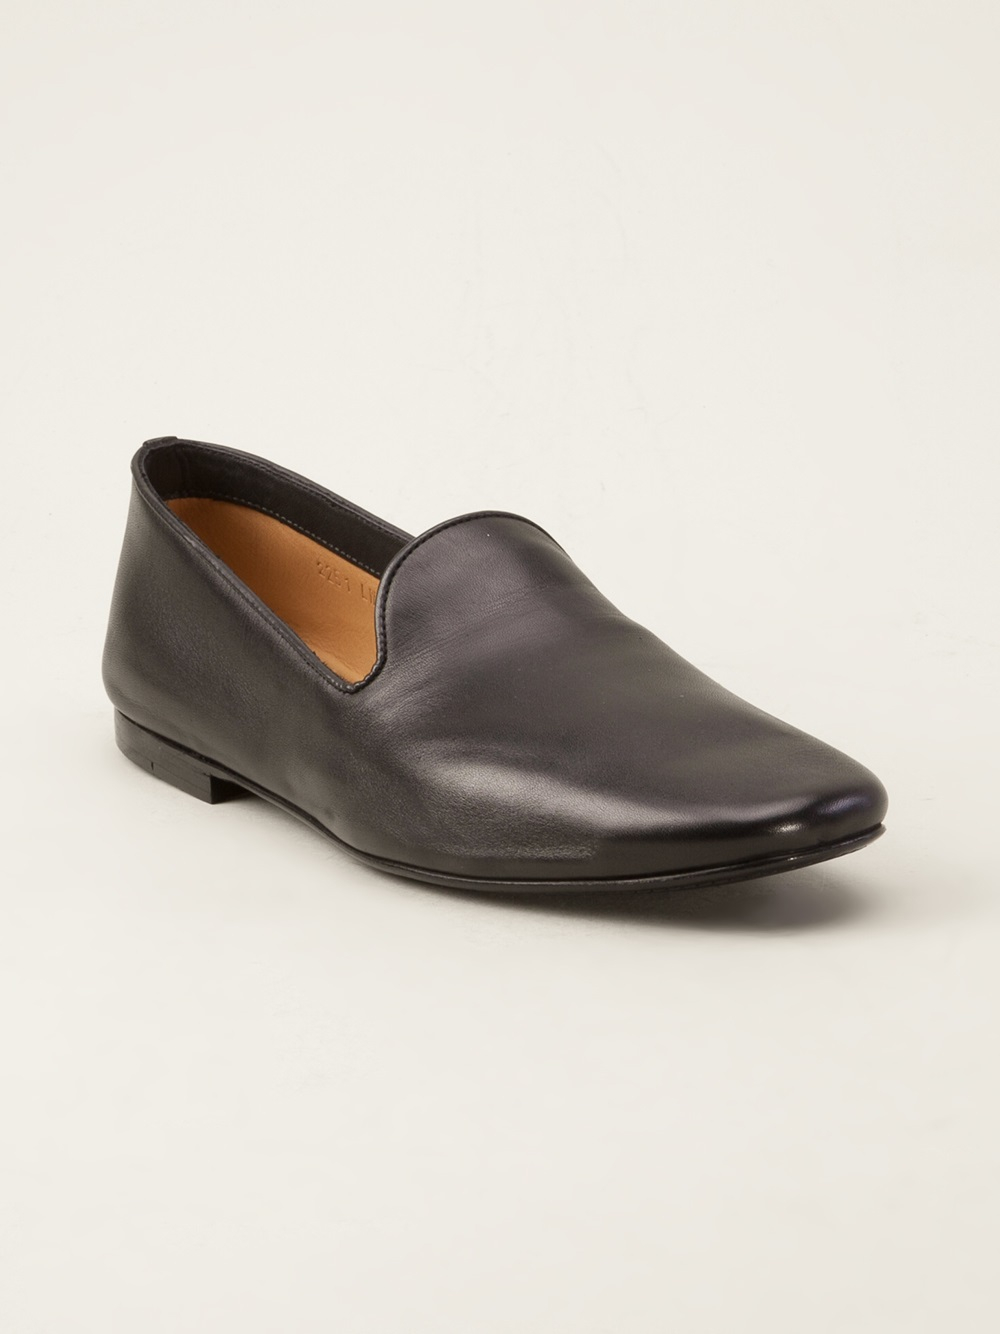 Christophe Lemaire Leather Loafer In Black For Men Lyst